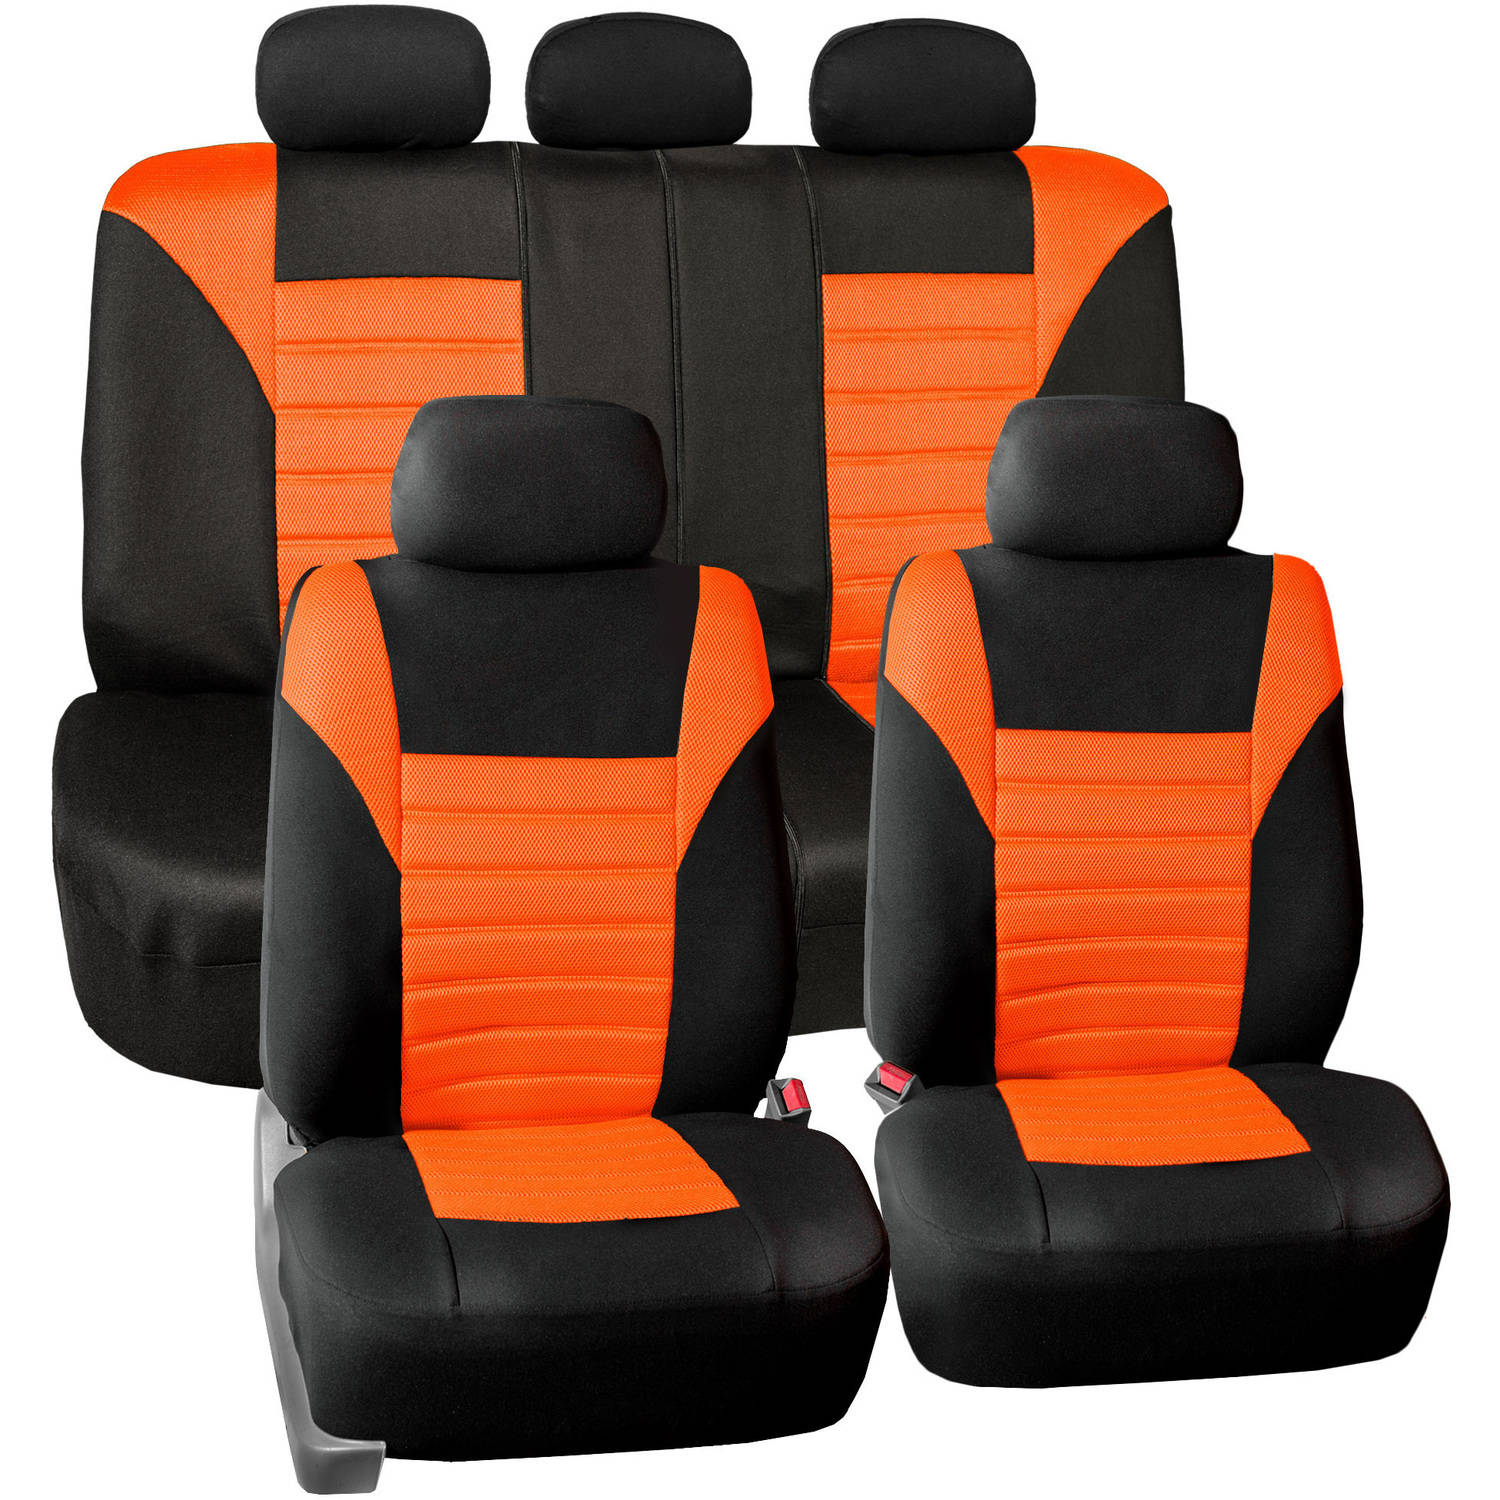 FH Group Universal Fit Premium Airbag Compatible 3D Air Mesh Full Set Seat Covers, Orange